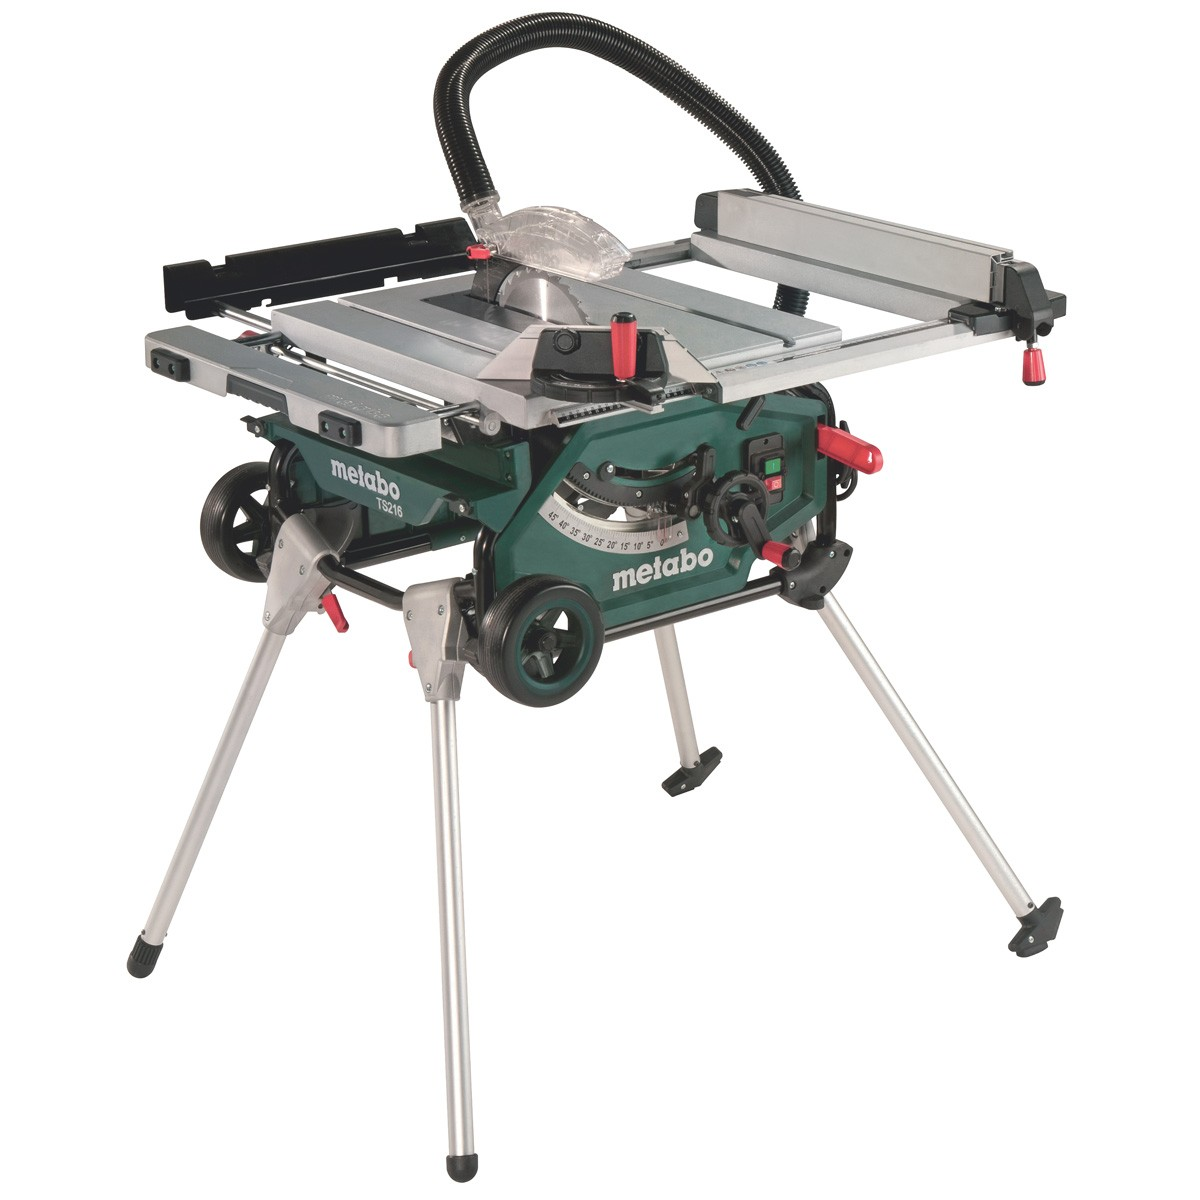 Metabo Ts 216 Floor Table Circular Saw With Base Frame Trolley 240v Powertool World